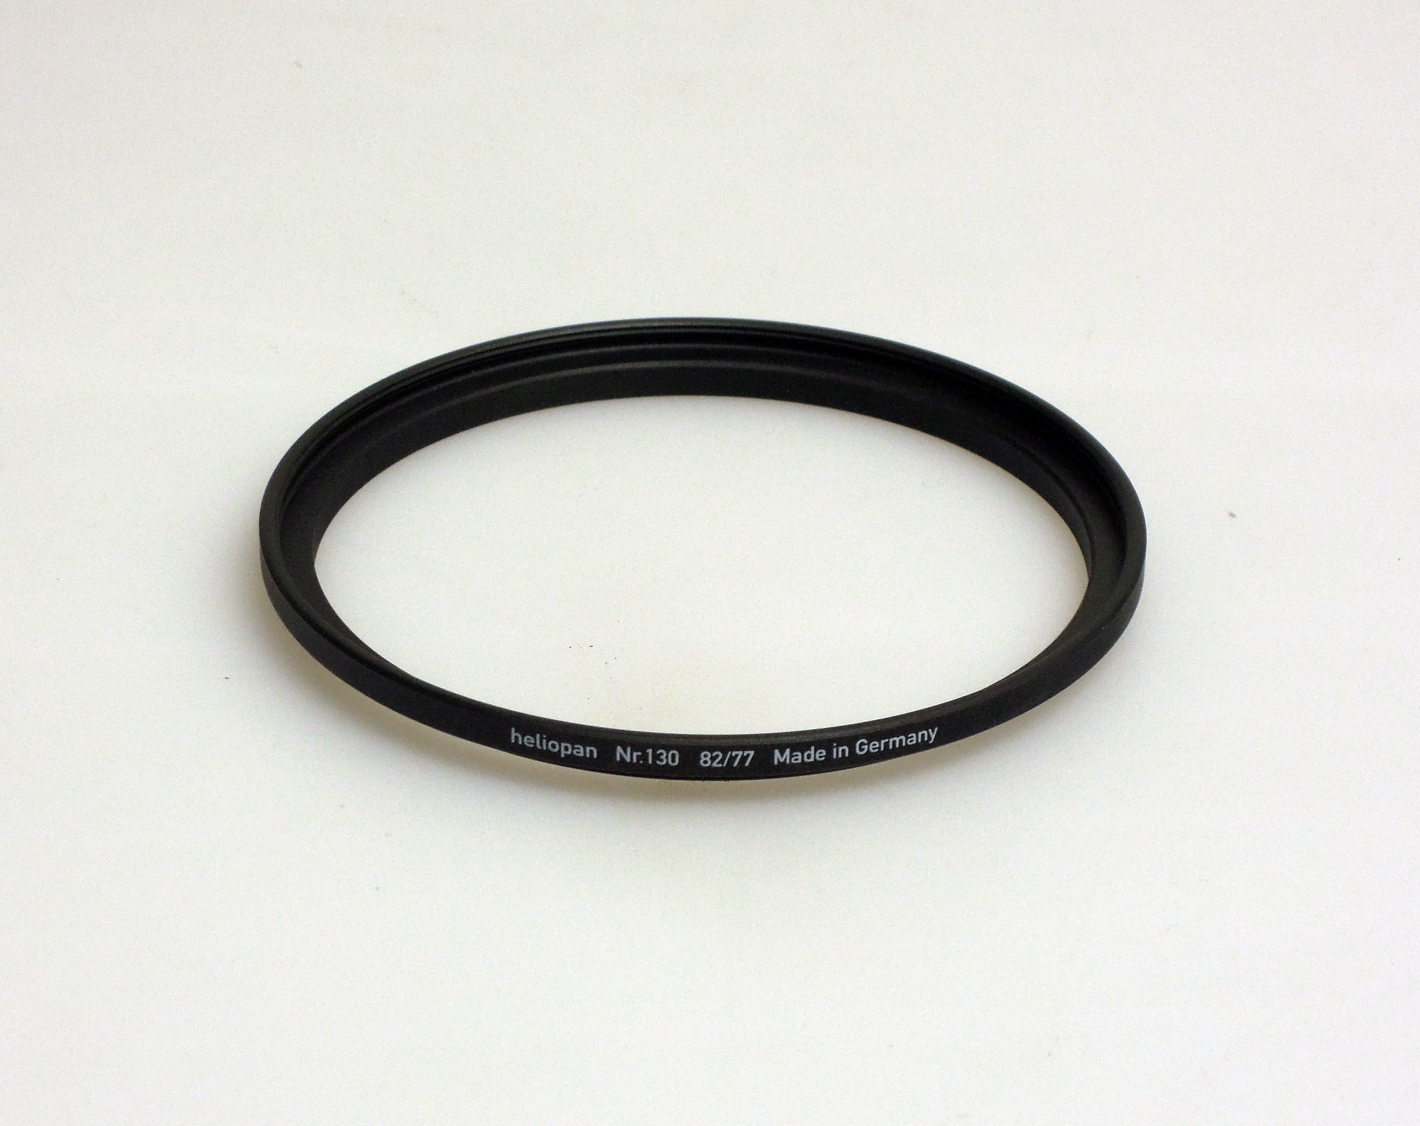 Heliopan adapter/stepping ring up to 82mm filter